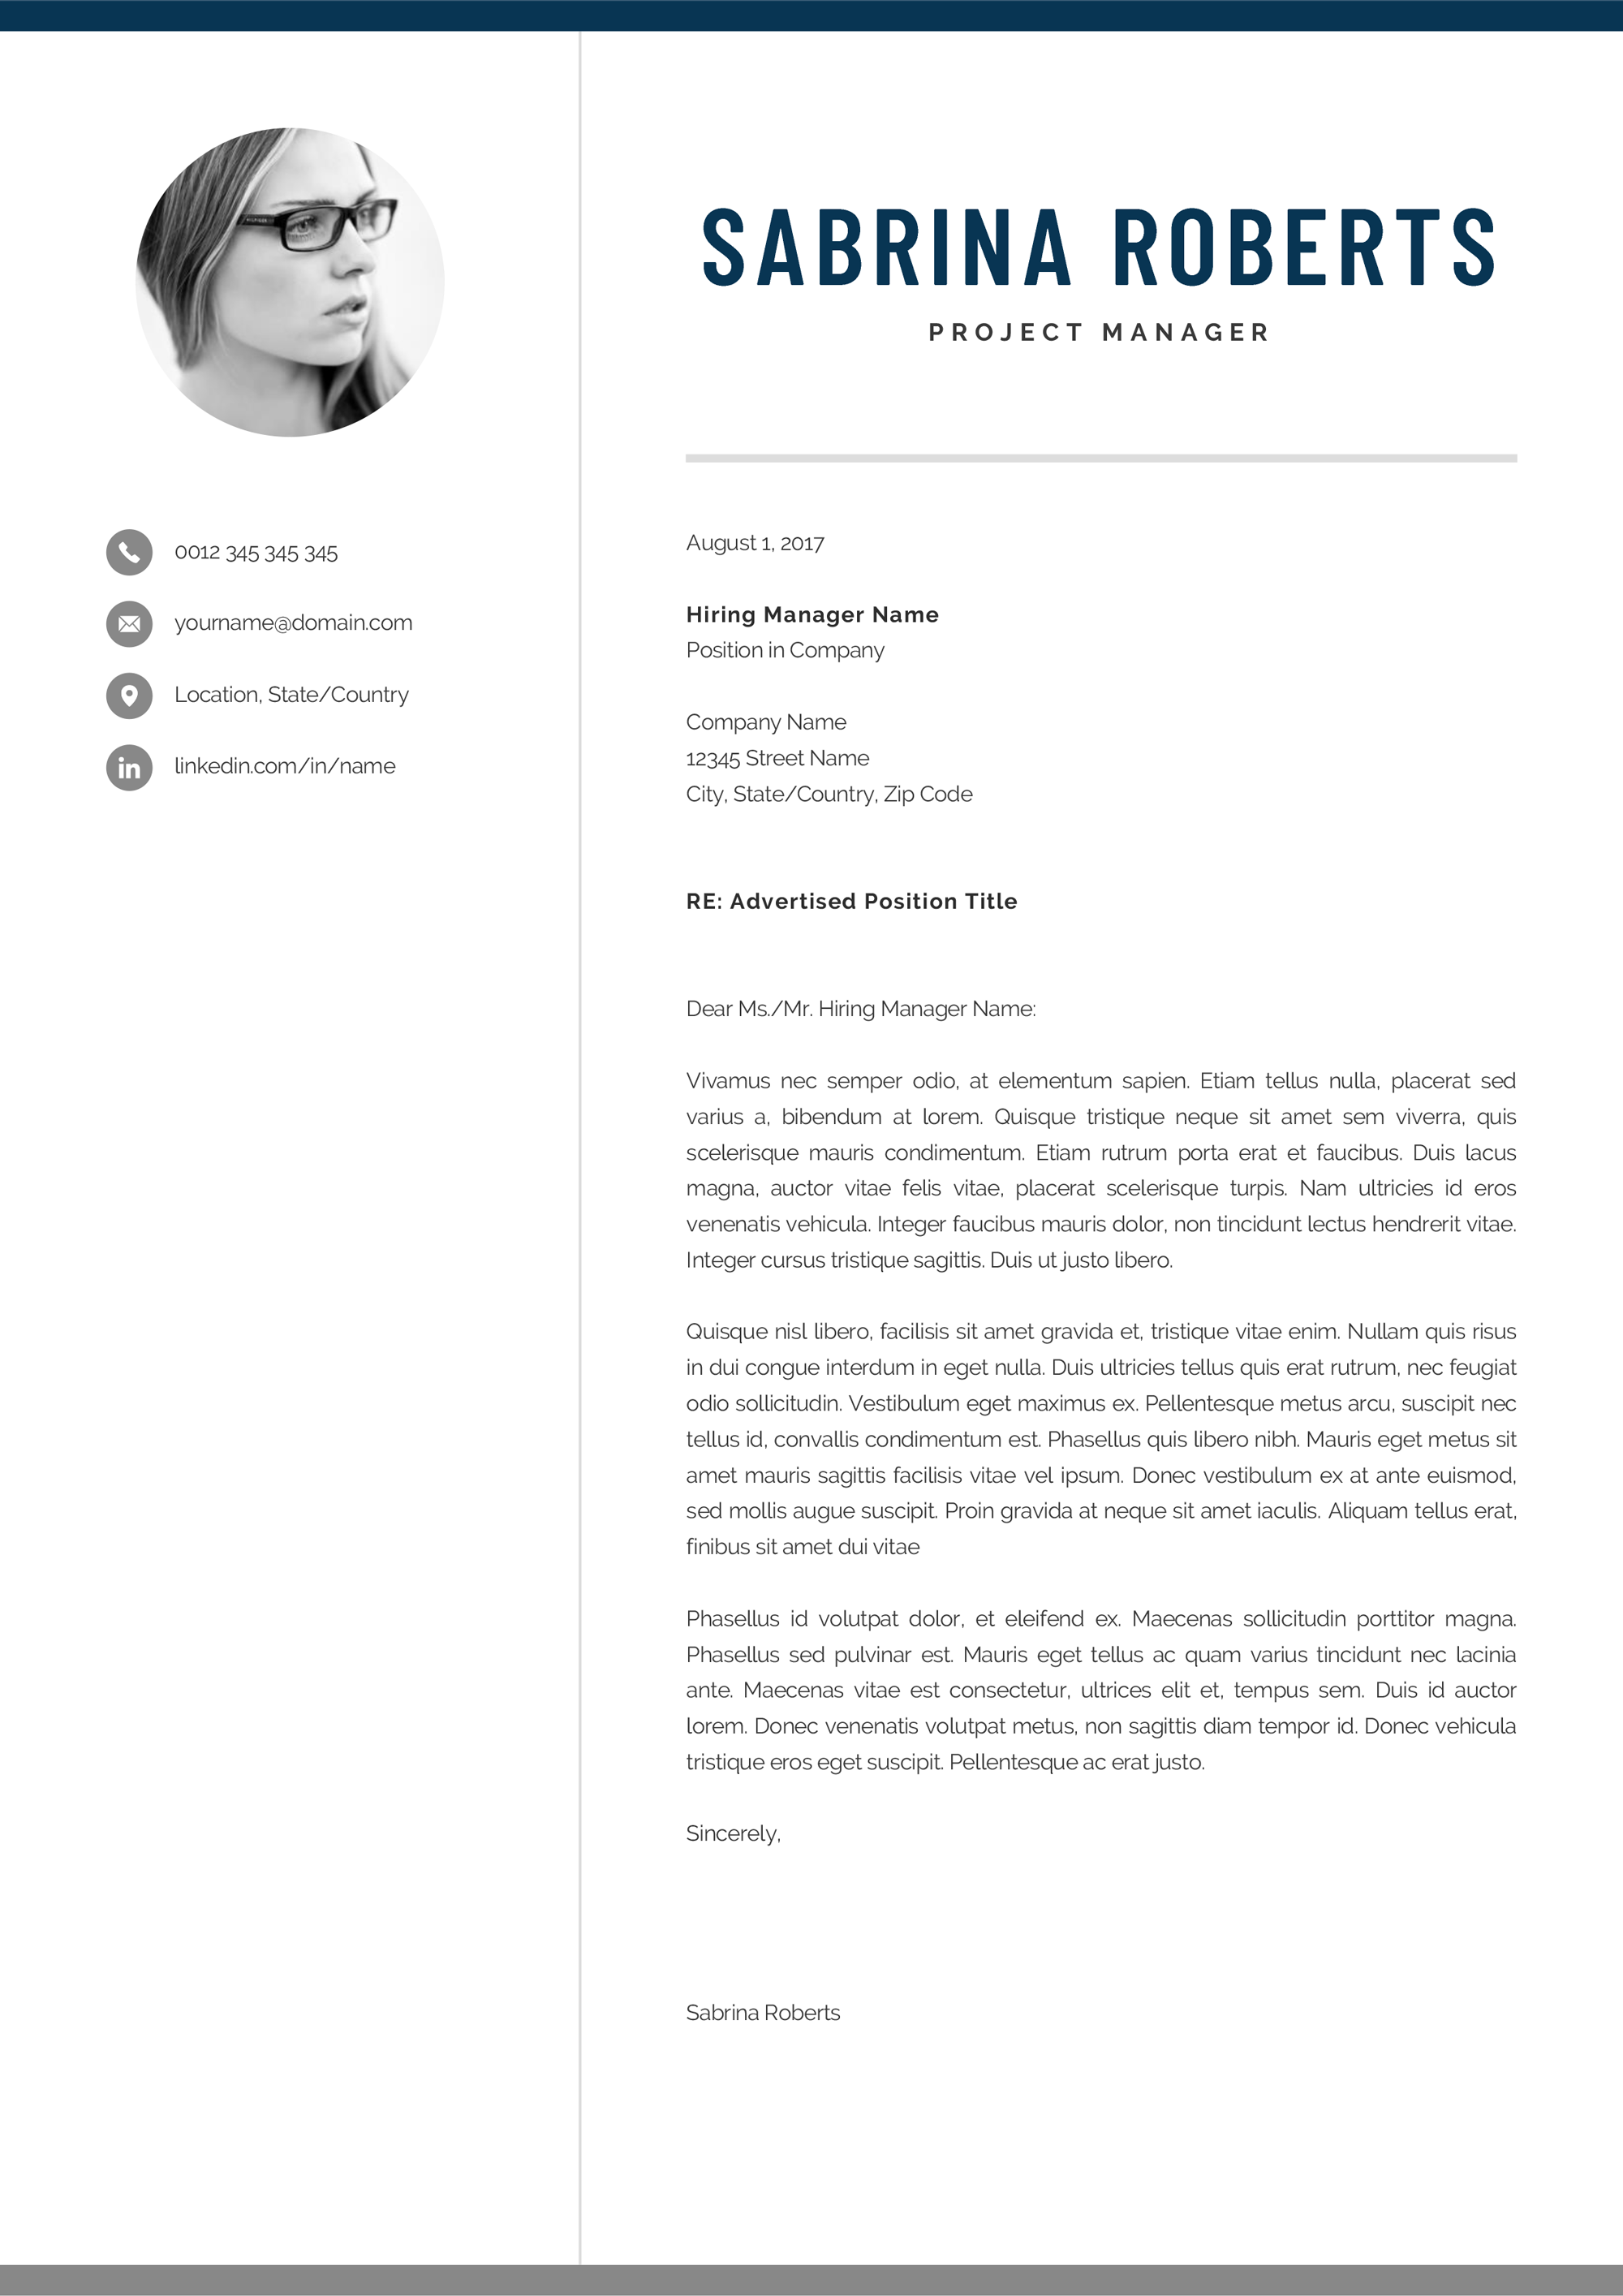 cv template with photo, resume for word, restaurant manager samples download free word hotelier format pdf